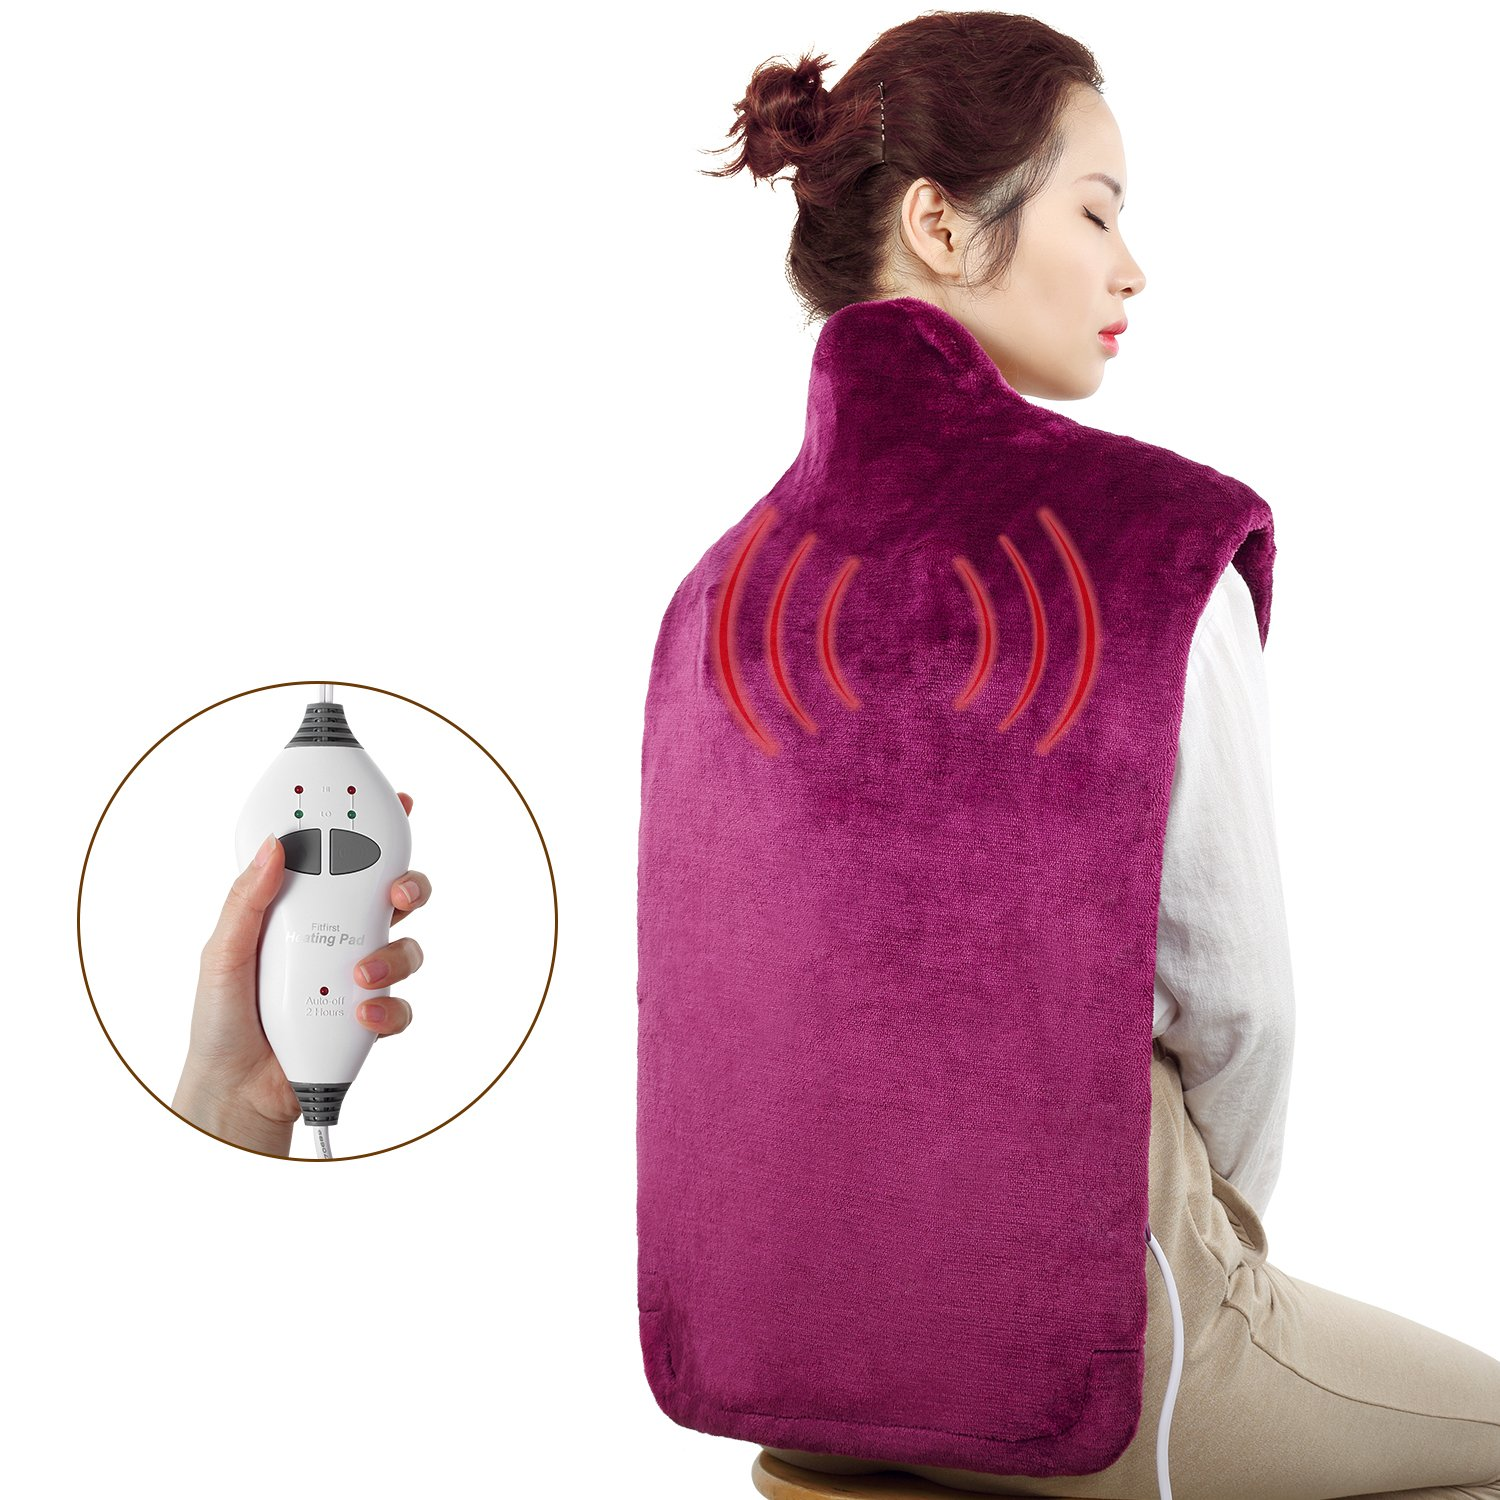 Fitfirst Heating Pad 32.7'' x 15'' Large Size Flannel with Massage Function and Fast-Heating Technology, 2-Hour Auto-Off, Machine Washable Cover(Violet)